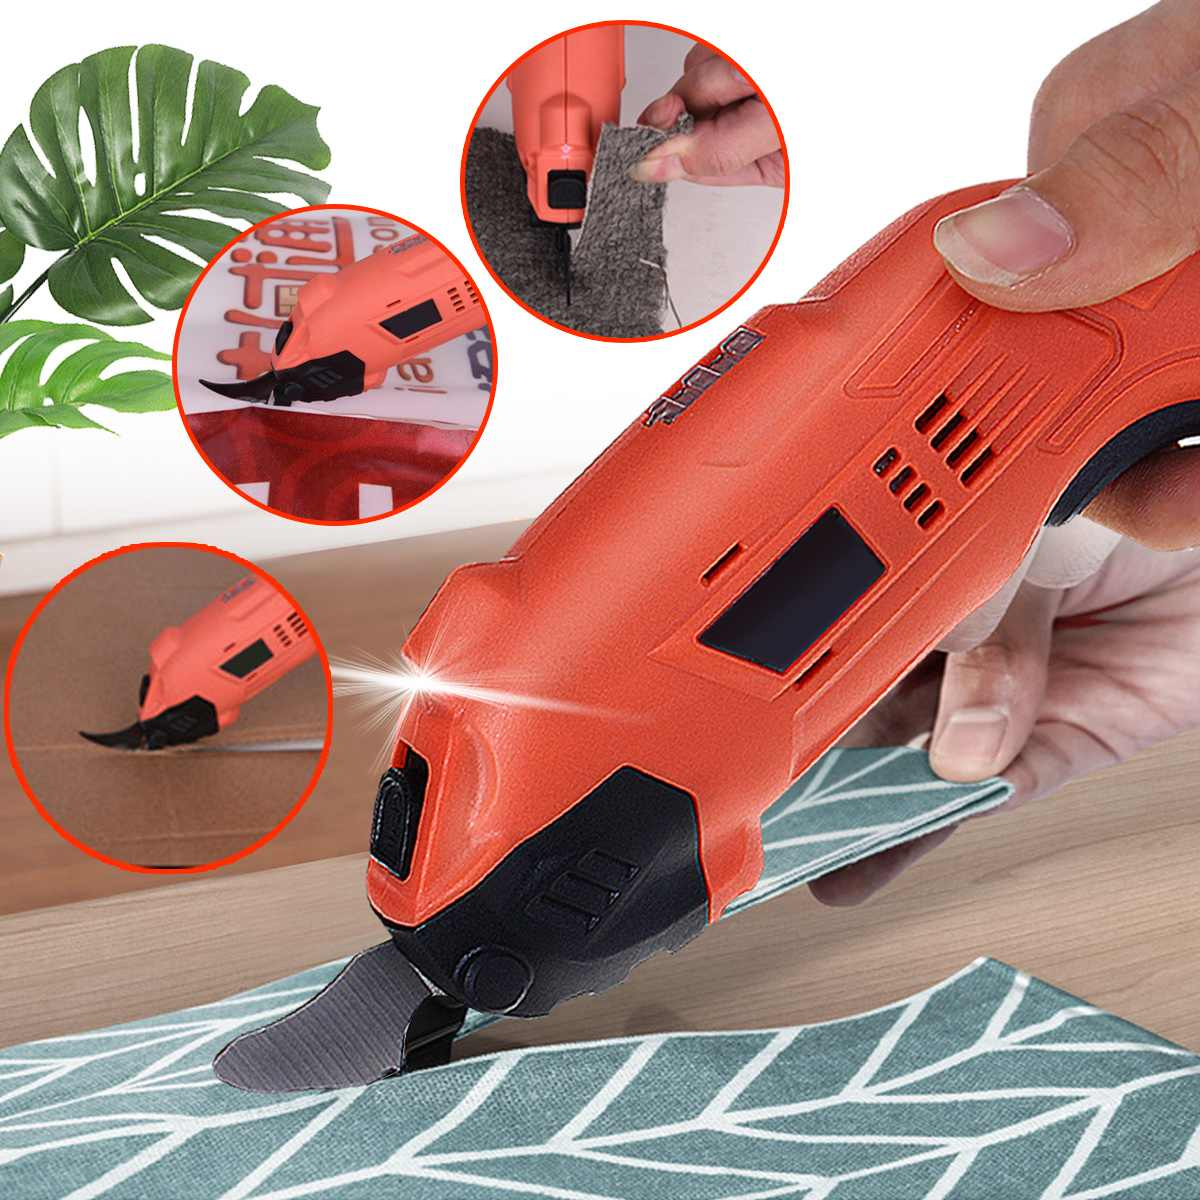 220V Electric Cordless Scissors Tailors Cutter Cutting Machine With 2 Blades Cutting LED Workinglight Multipurpose Power Tool|Electric Scissors| |  - title=